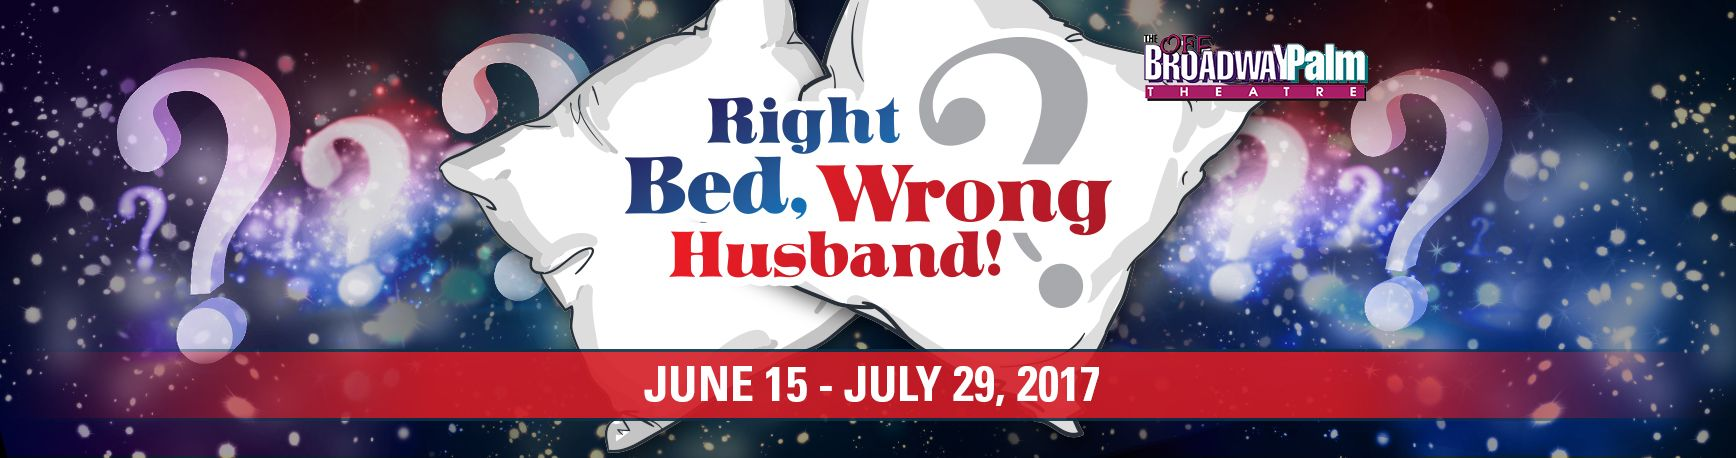 White lie turns into real whopper in Off Broadway Palm's 'Right Bed, Wrong Husband'